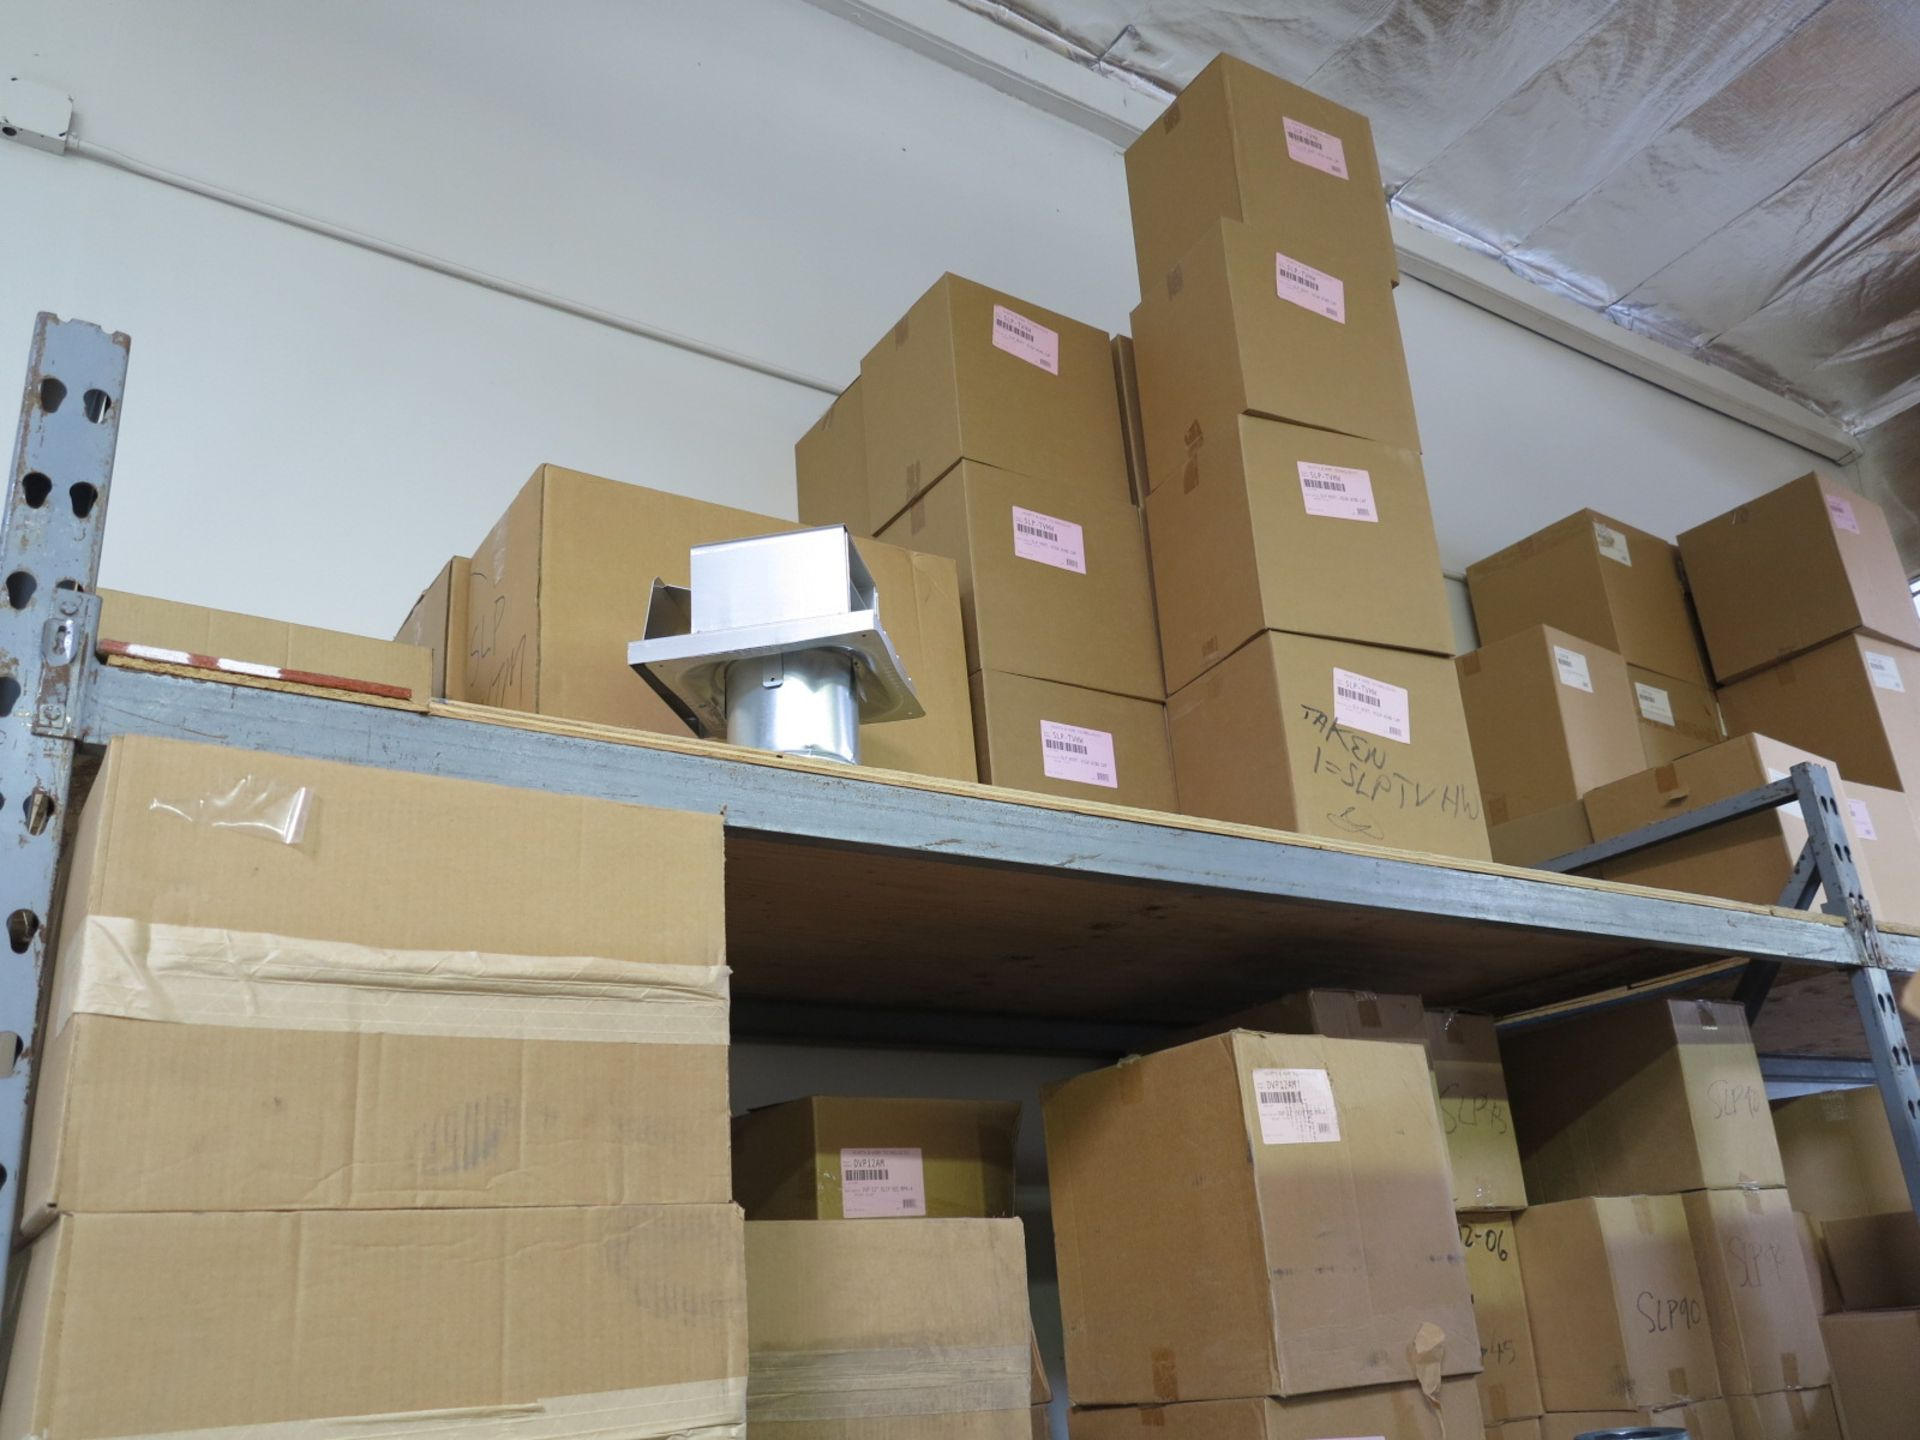 LOT - CONTENTS OF (1) SECTION OF PALLET RACKING, MISC STOVE PARTS - Image 4 of 4